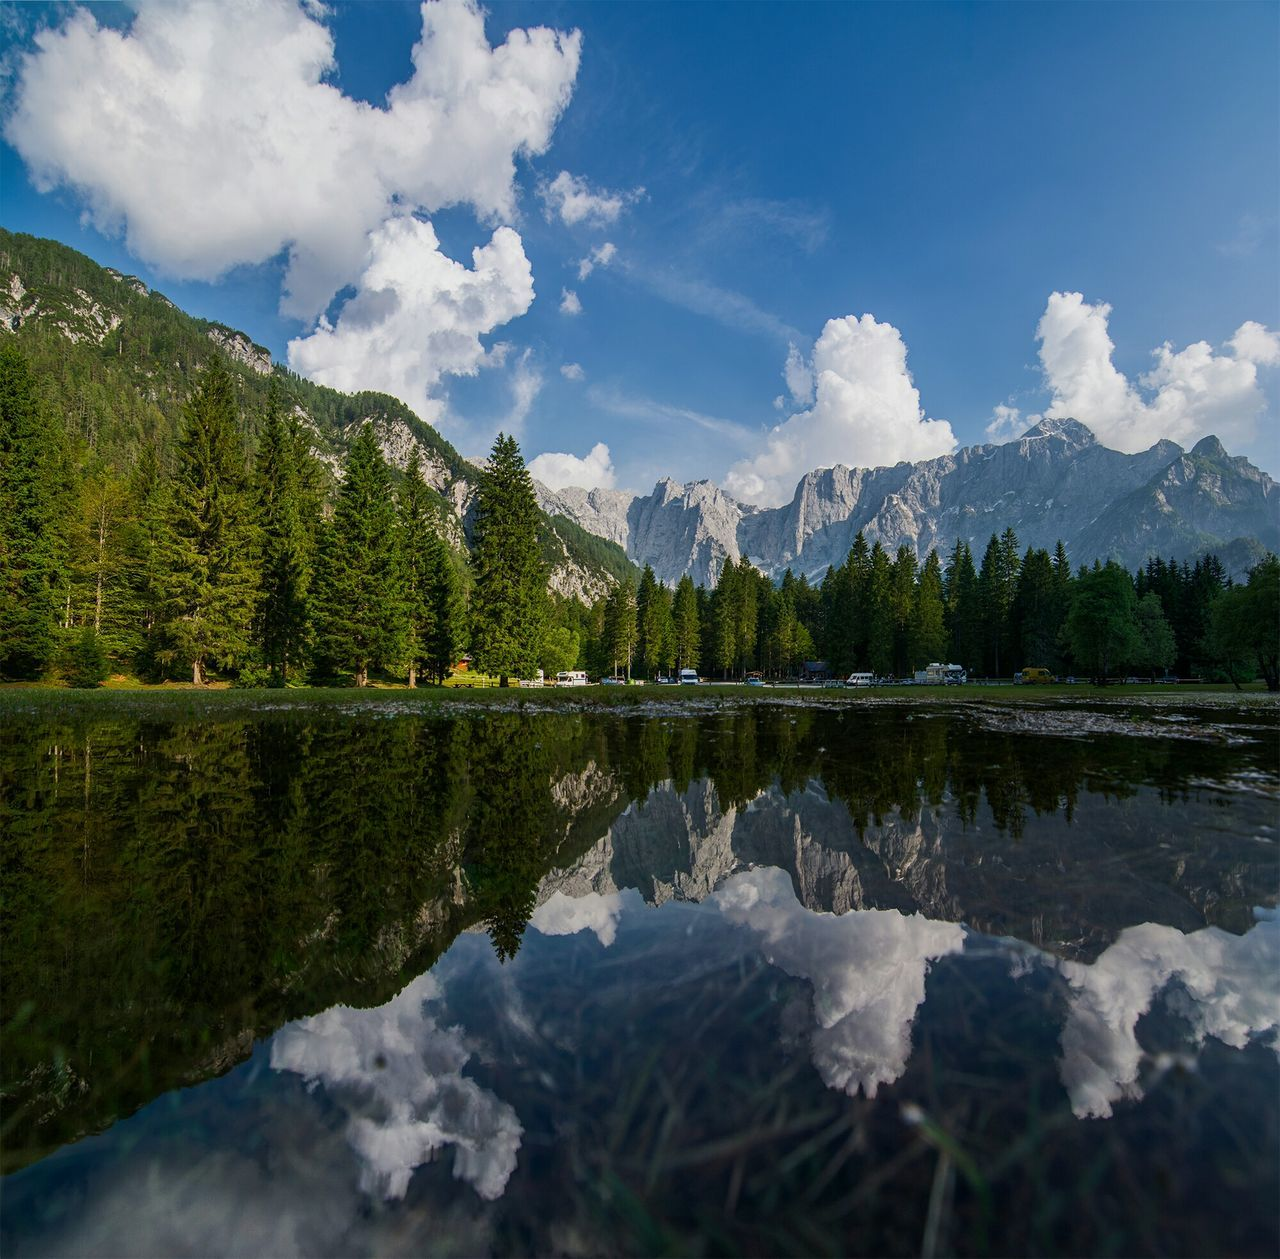 Laghi di Fusine, Italy www.jurekralj.com Italy Slovenia Lake Lakeside Mountains Landscape_Collection Landscape Landscape #Nature #photography Nature Nature On Your Doorstep Nature Photography Sky Green Travel Travel Photography EyeEm Gallery Best Of EyeEm Nature_collection Check This Out EyeEm Best Shots - Nature Picture Of The Day Bestoftheday EyeEm Best Shots Explore Slovenian Alps